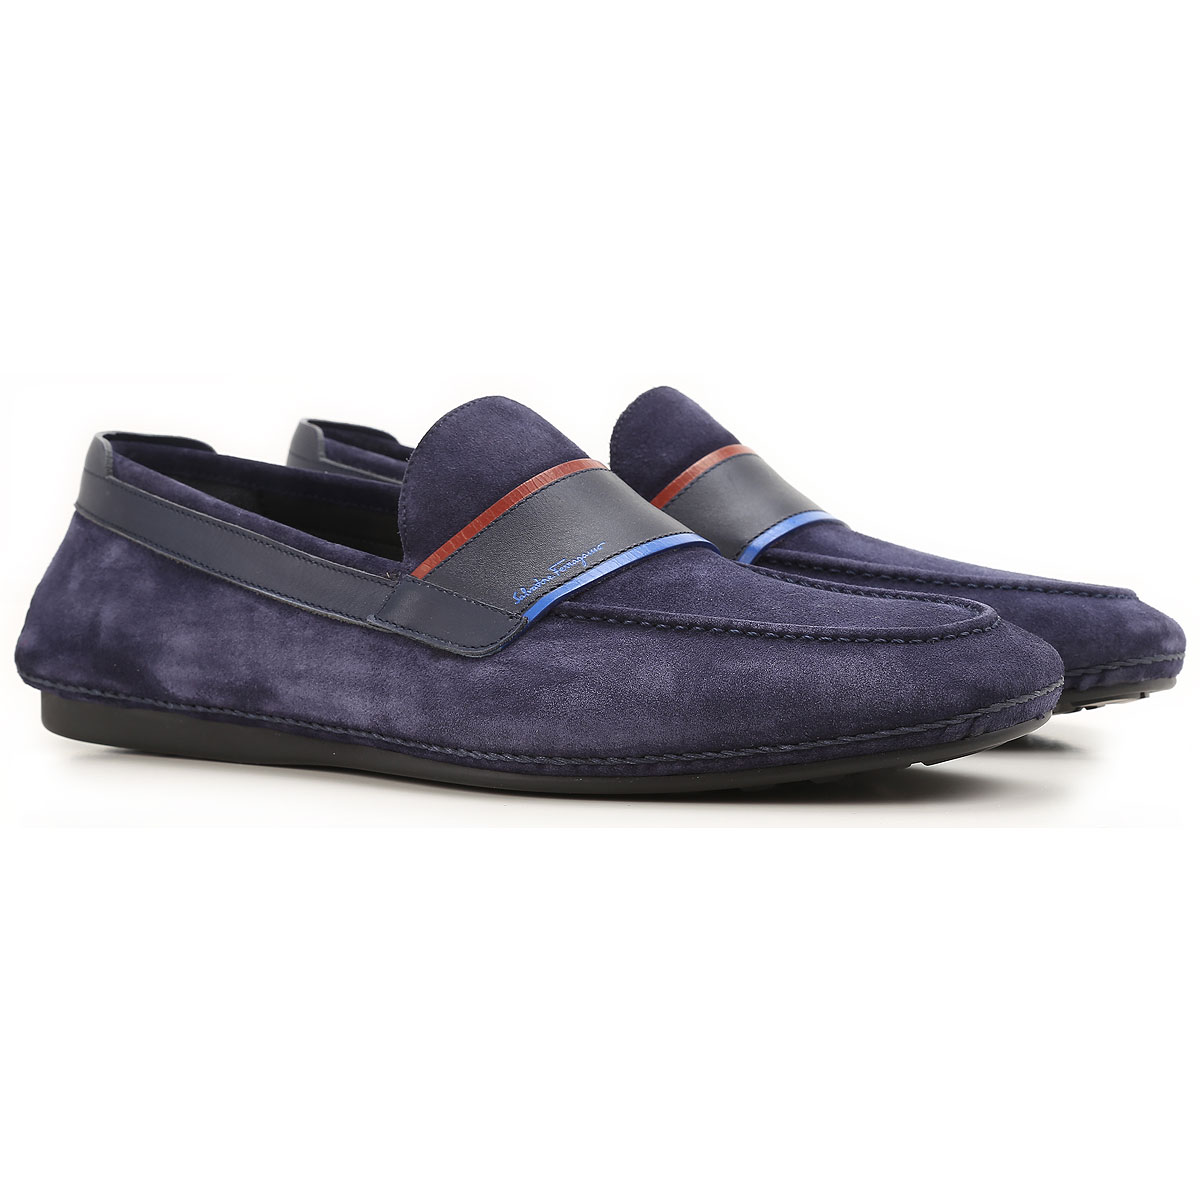 Ferragamo Blue Shoes Mens Leather